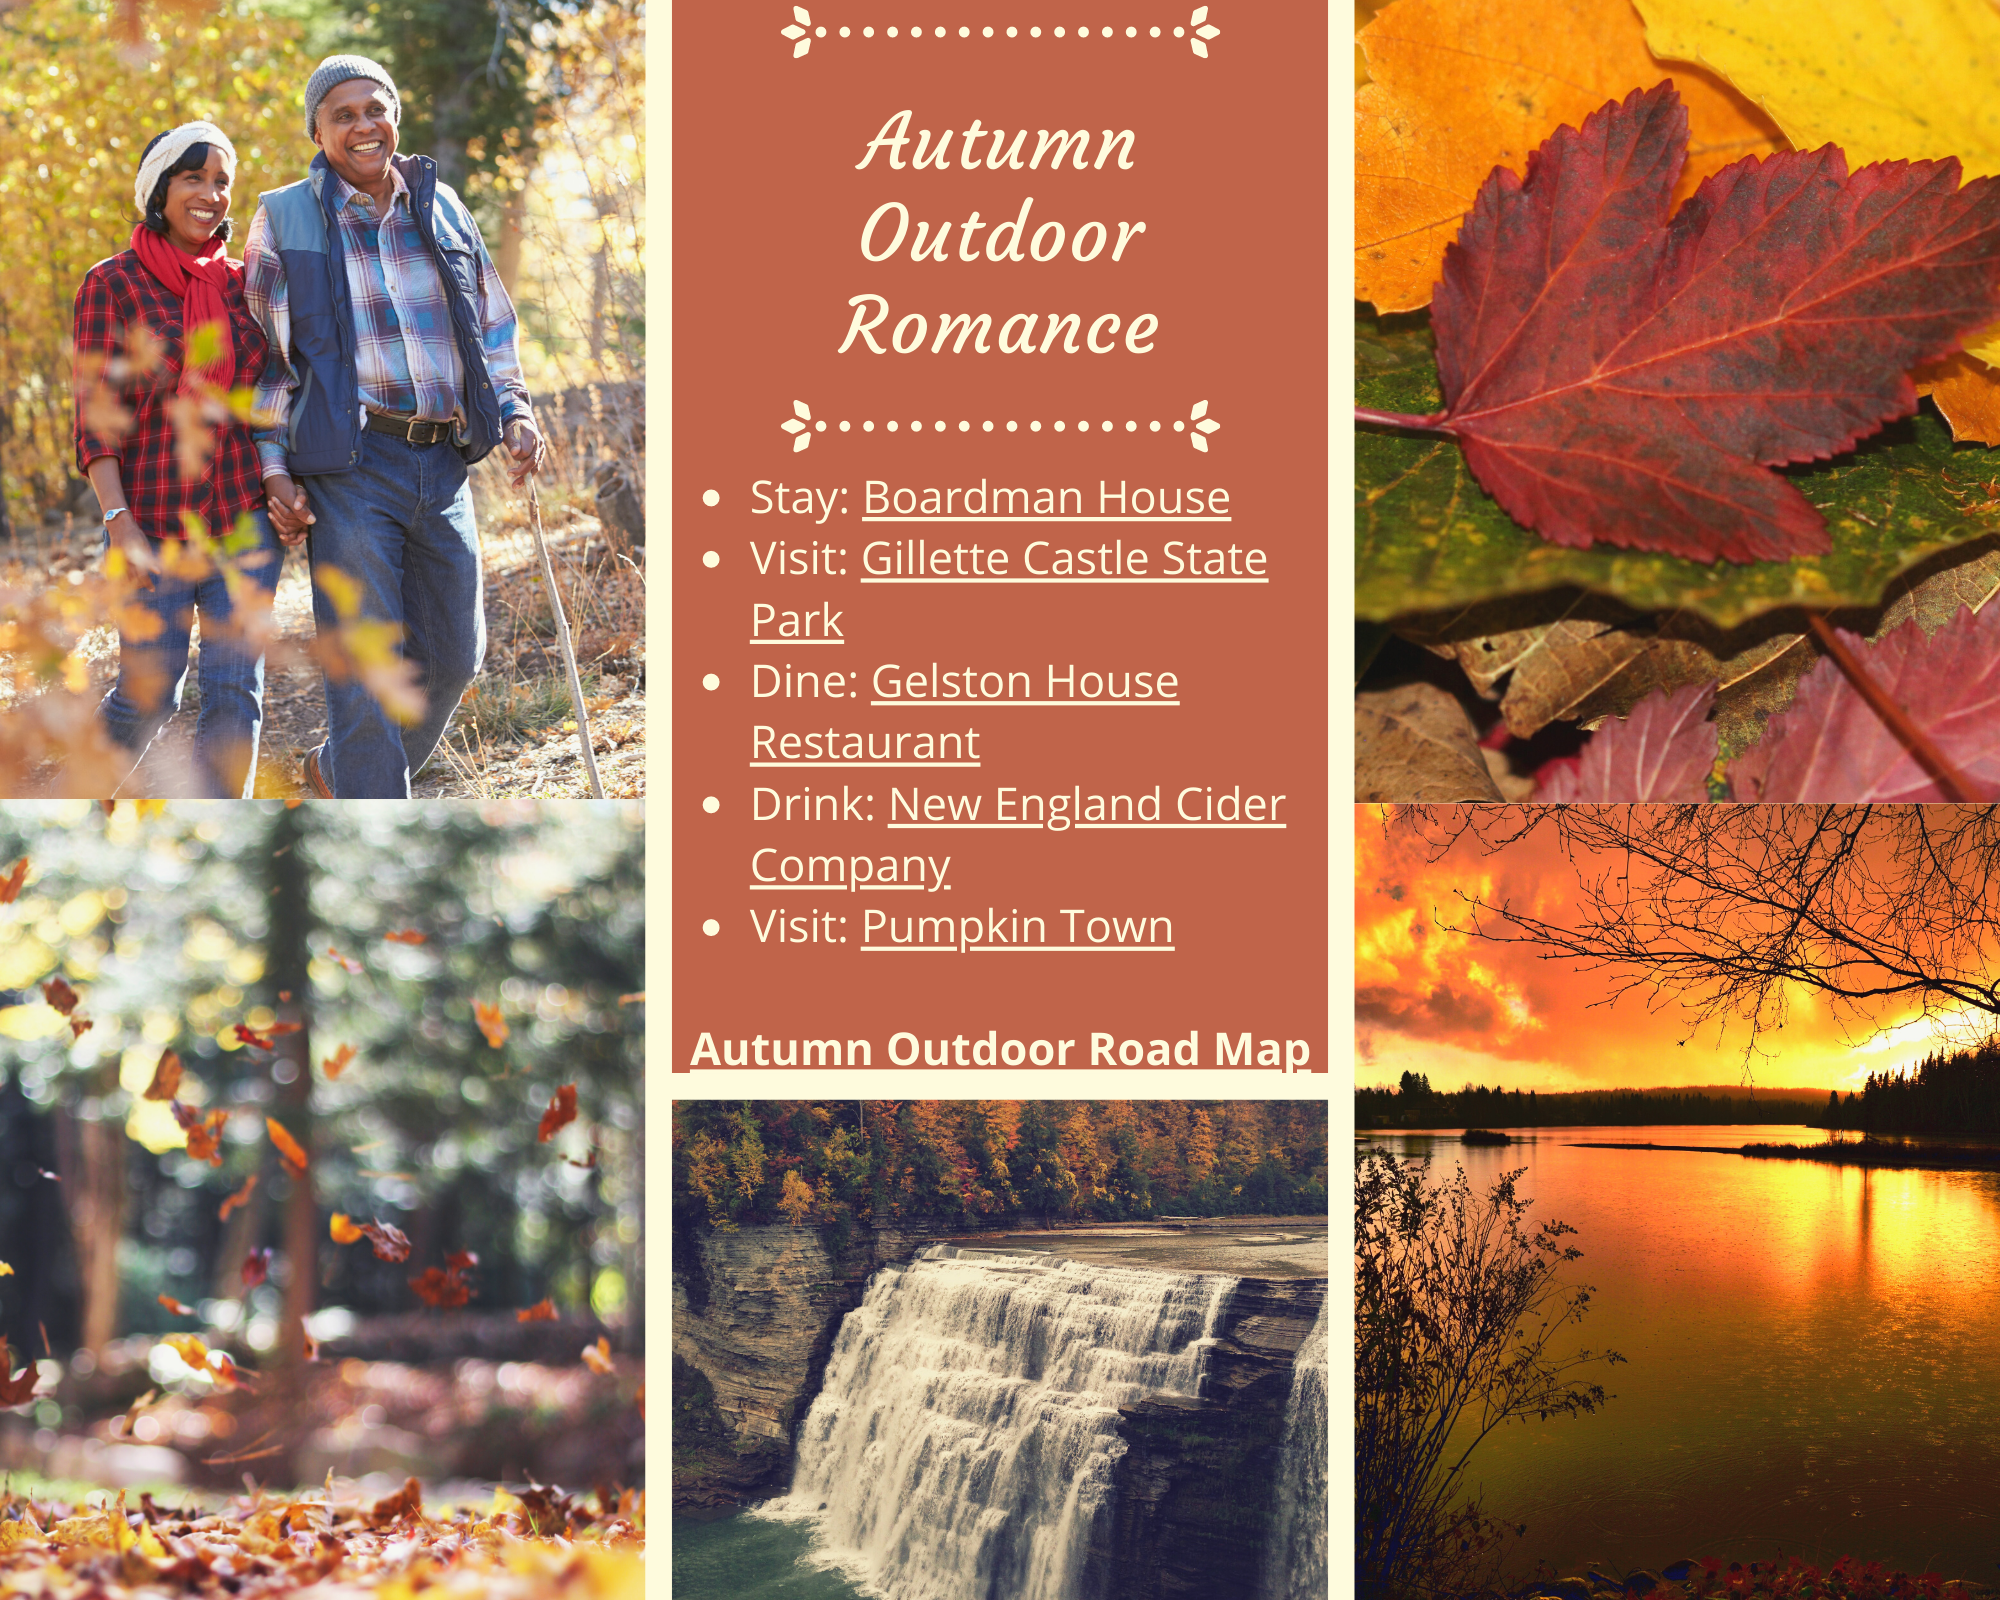 Autumn Outdoor Romance